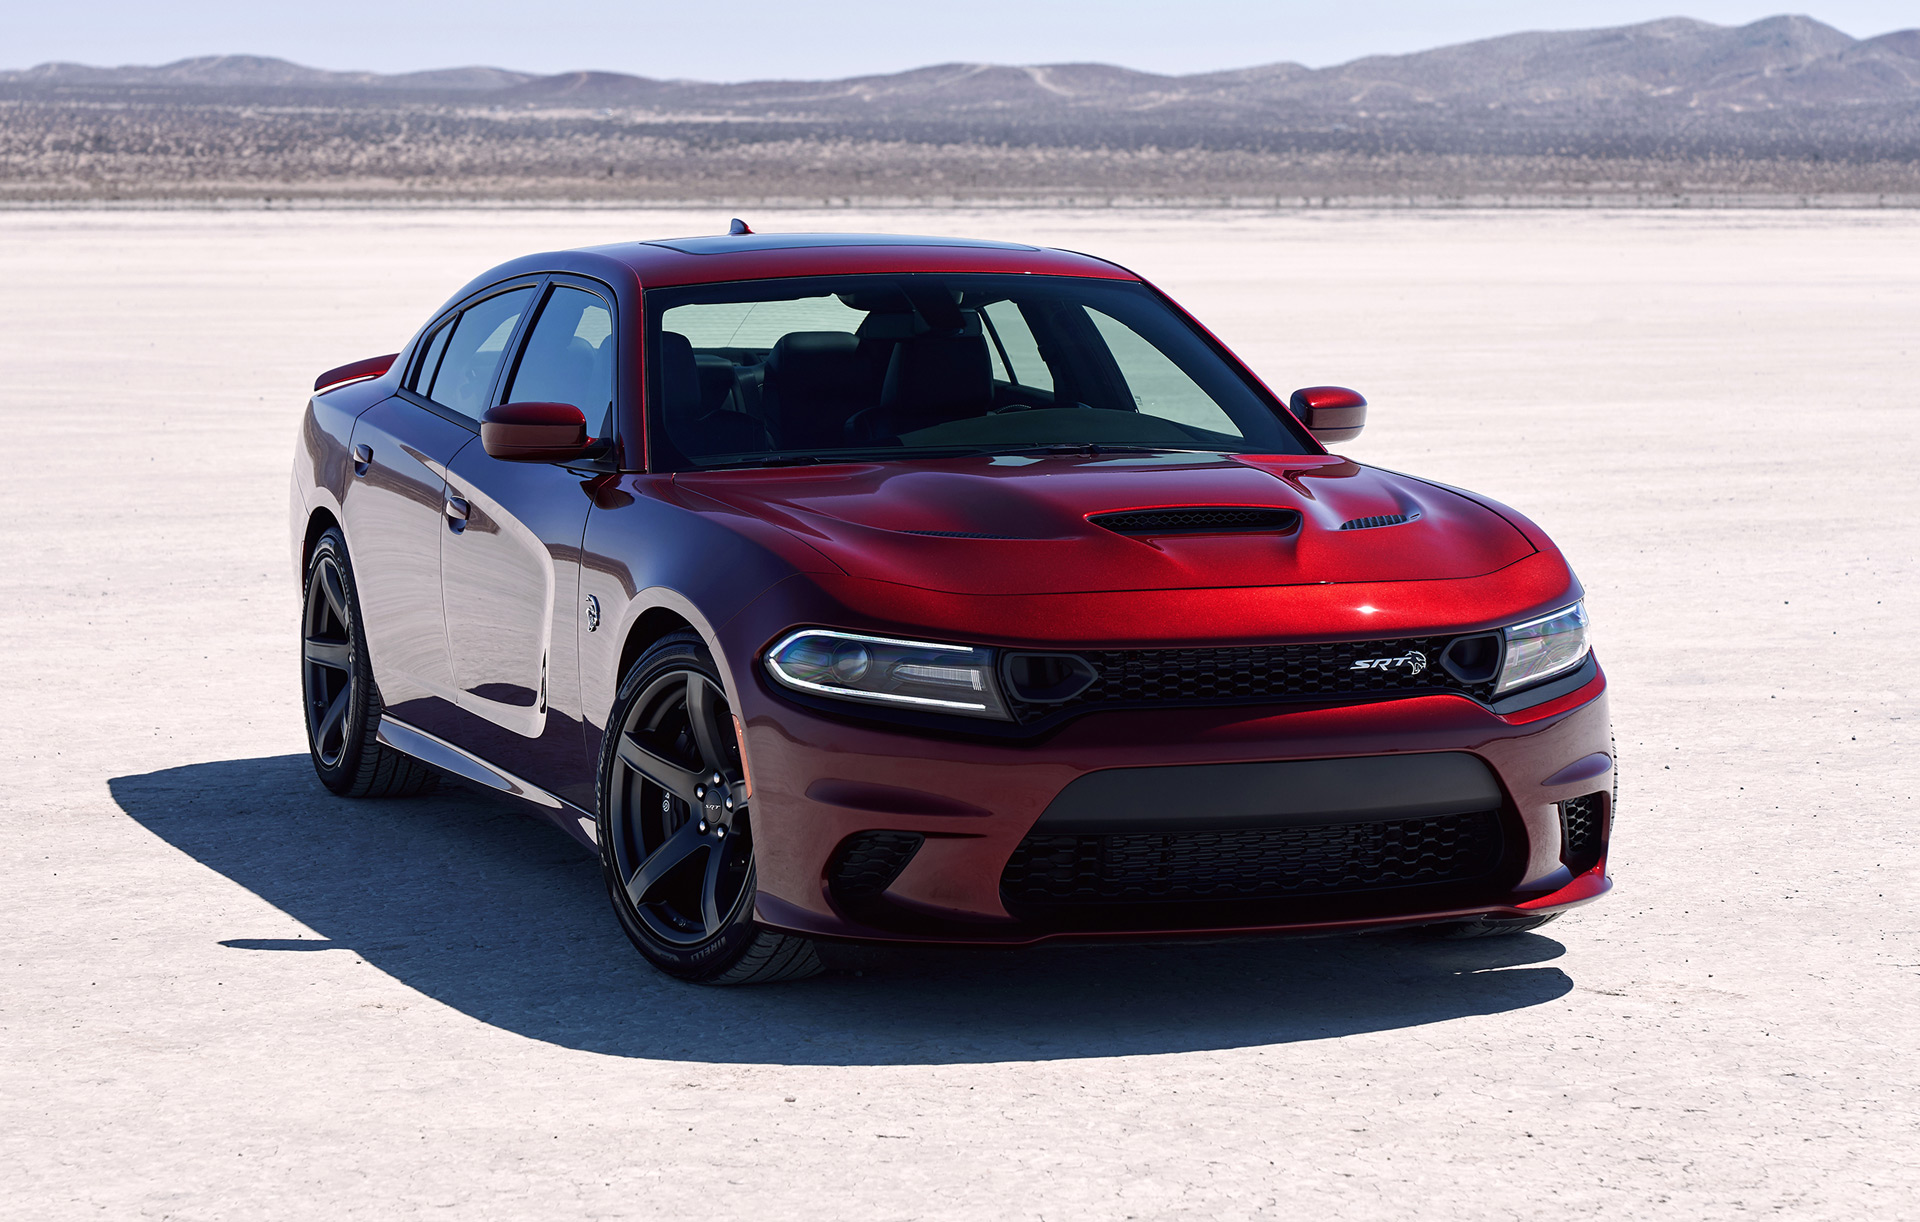 2019 dodge charger srt hellcat gets revised look demon tech. Black Bedroom Furniture Sets. Home Design Ideas